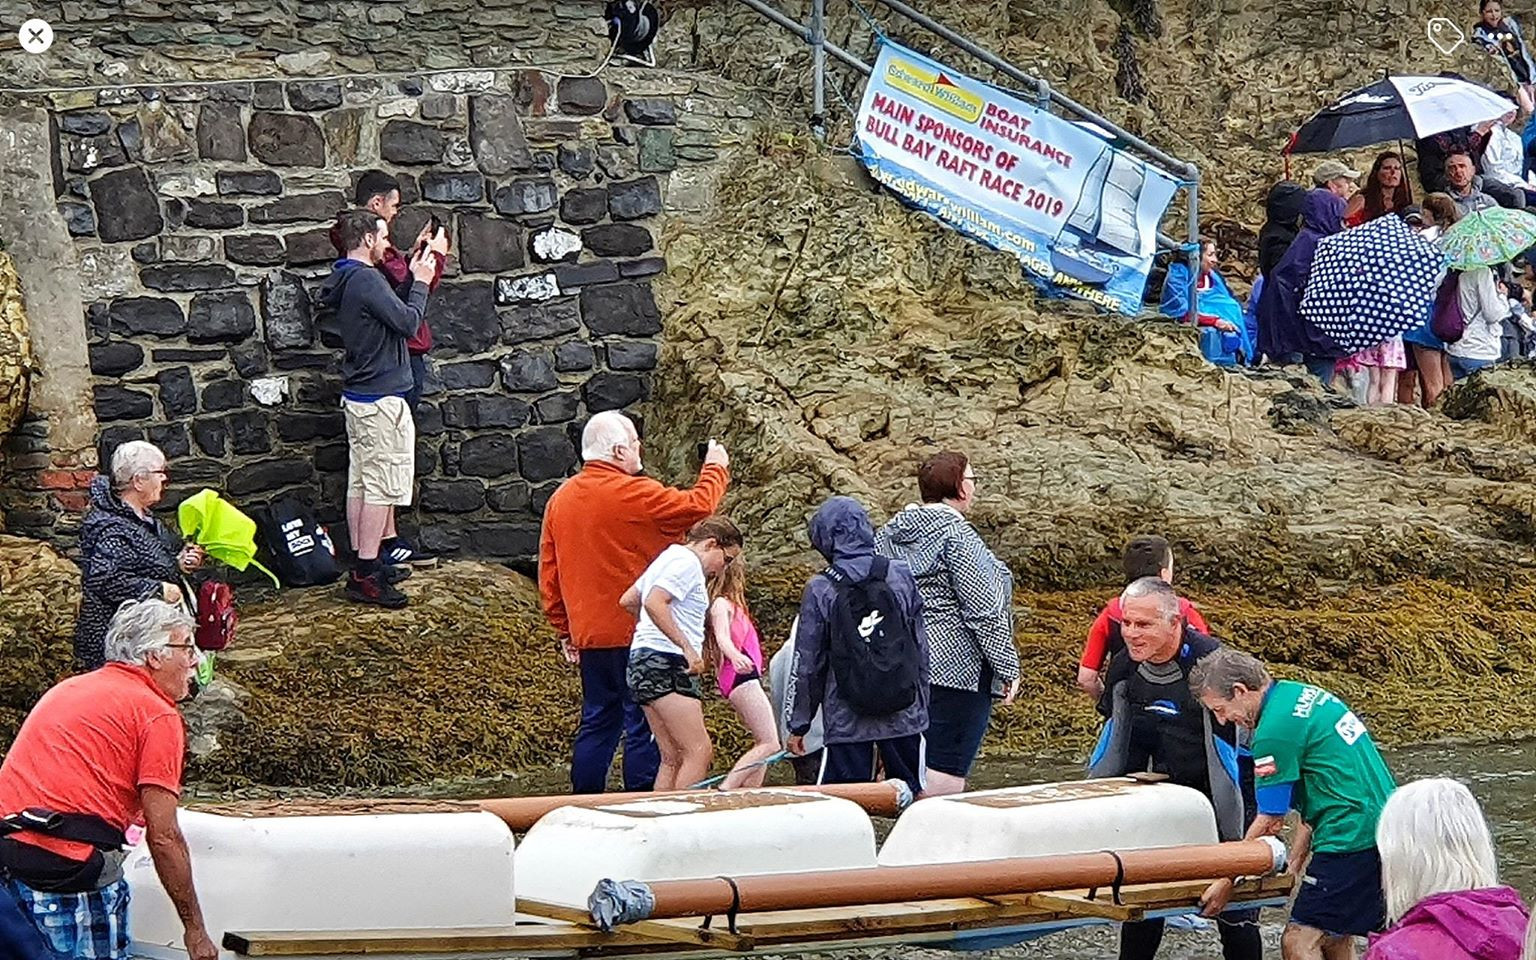 Here are a couple of photos from the Bull Bay Raft Race Image